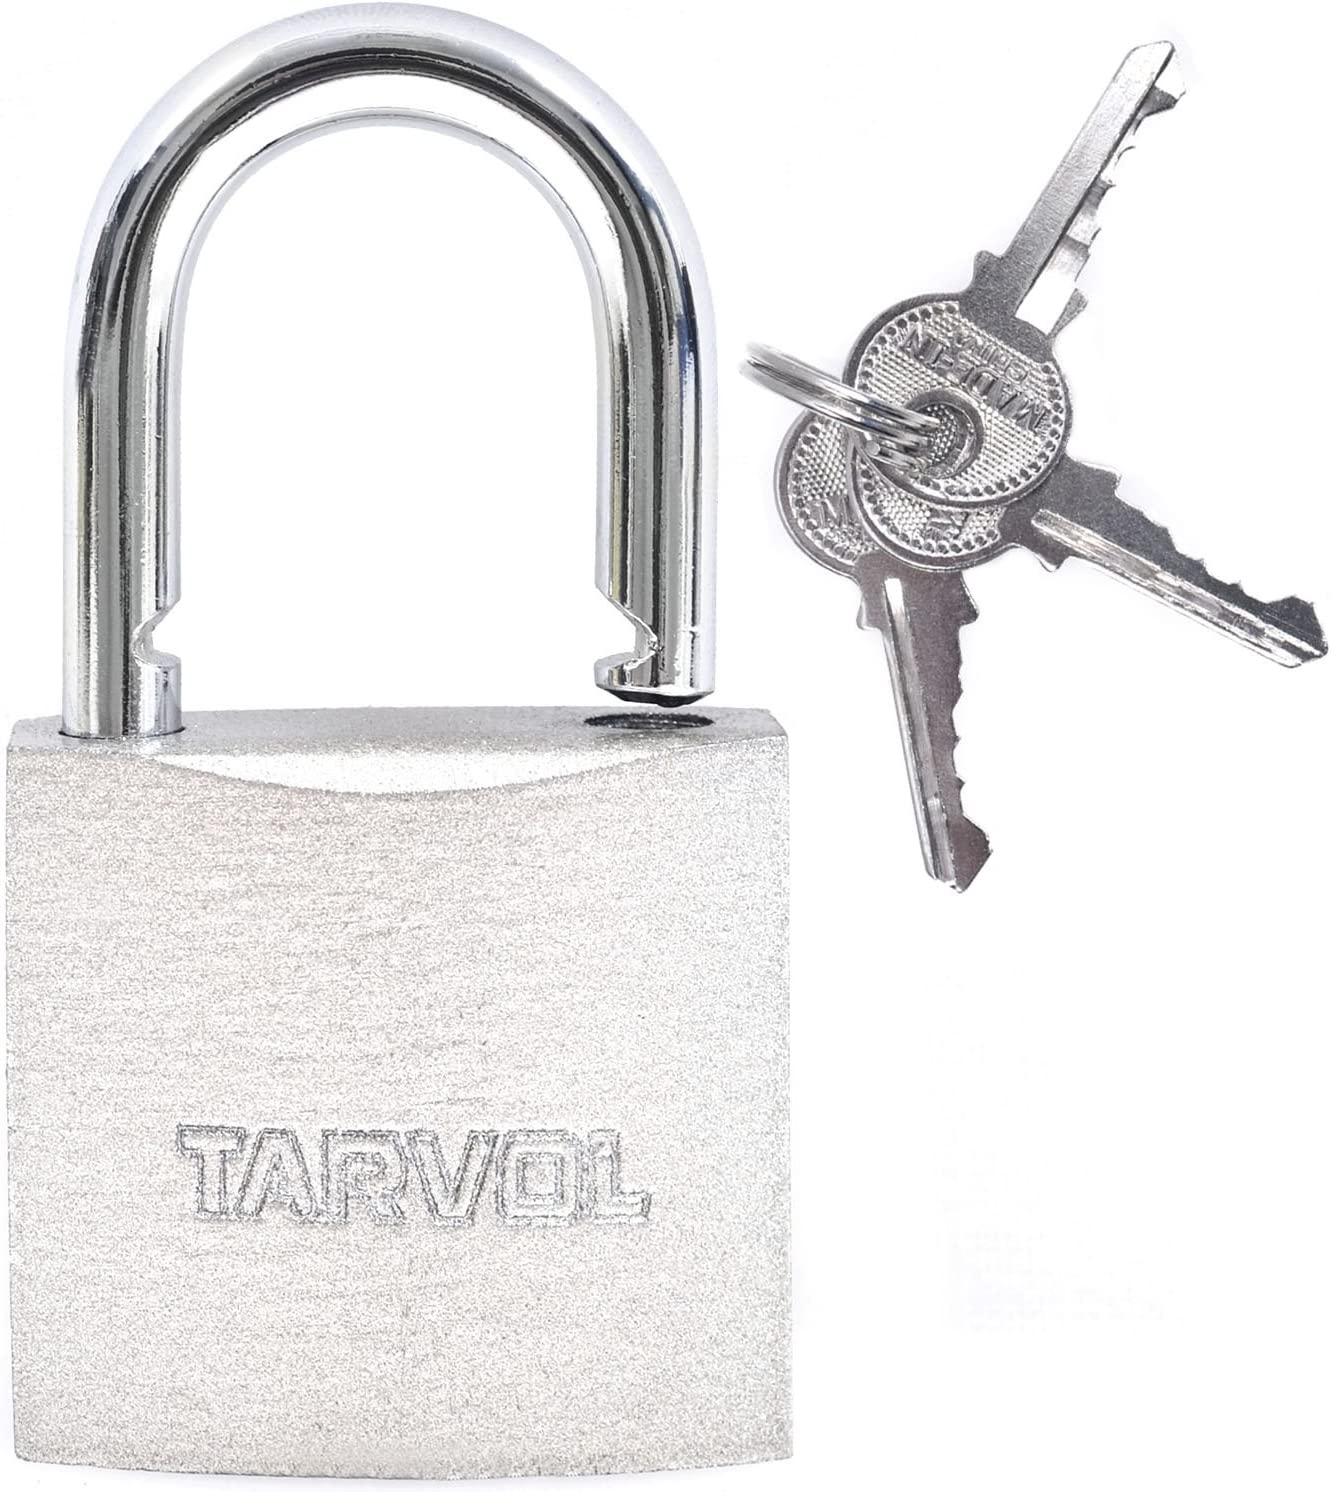 Steel Padlock with Keys (Heavy Duty Security) Safely Lock Interior or Exterior Gates, Sheds, Lockers, Bikes, Tool Box, or Containers. Includes 3 Master Keys - -